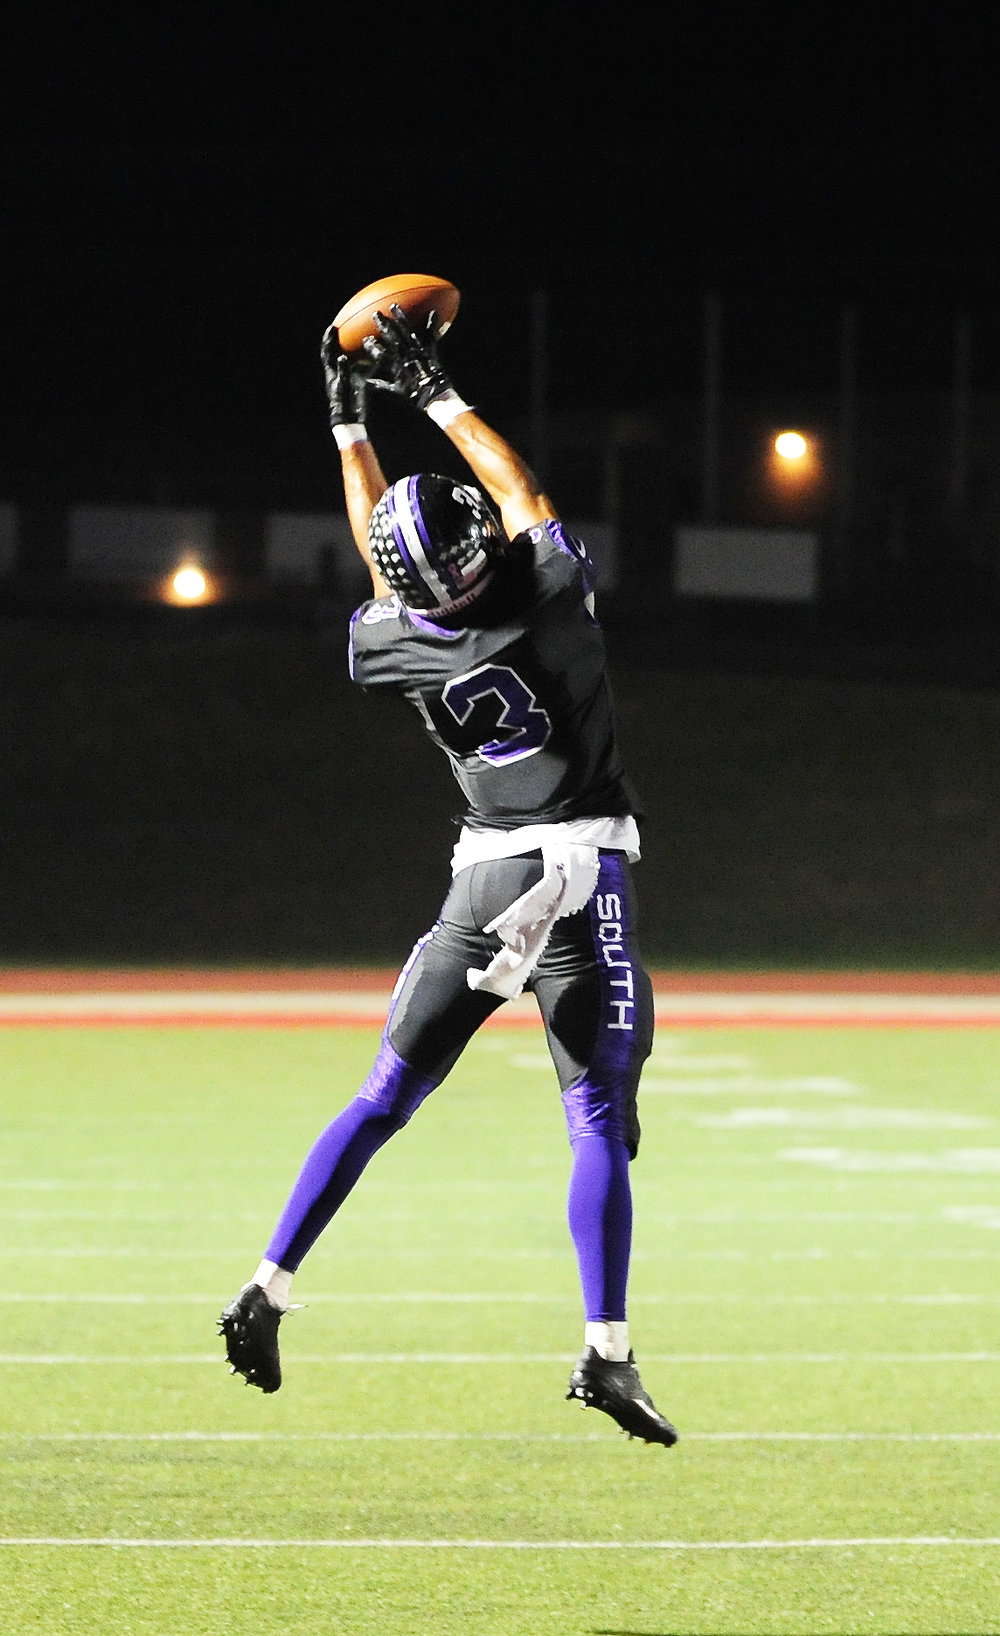 NICK INGRAM/Citizen photo Park Hill South senior wide receiver Jake Springer leaps for a catch during the Class 5 District 7 championship game against Fort Osage on Friday, Nov. 4 at Park Hill District Stadium in Kansas City, Mo.